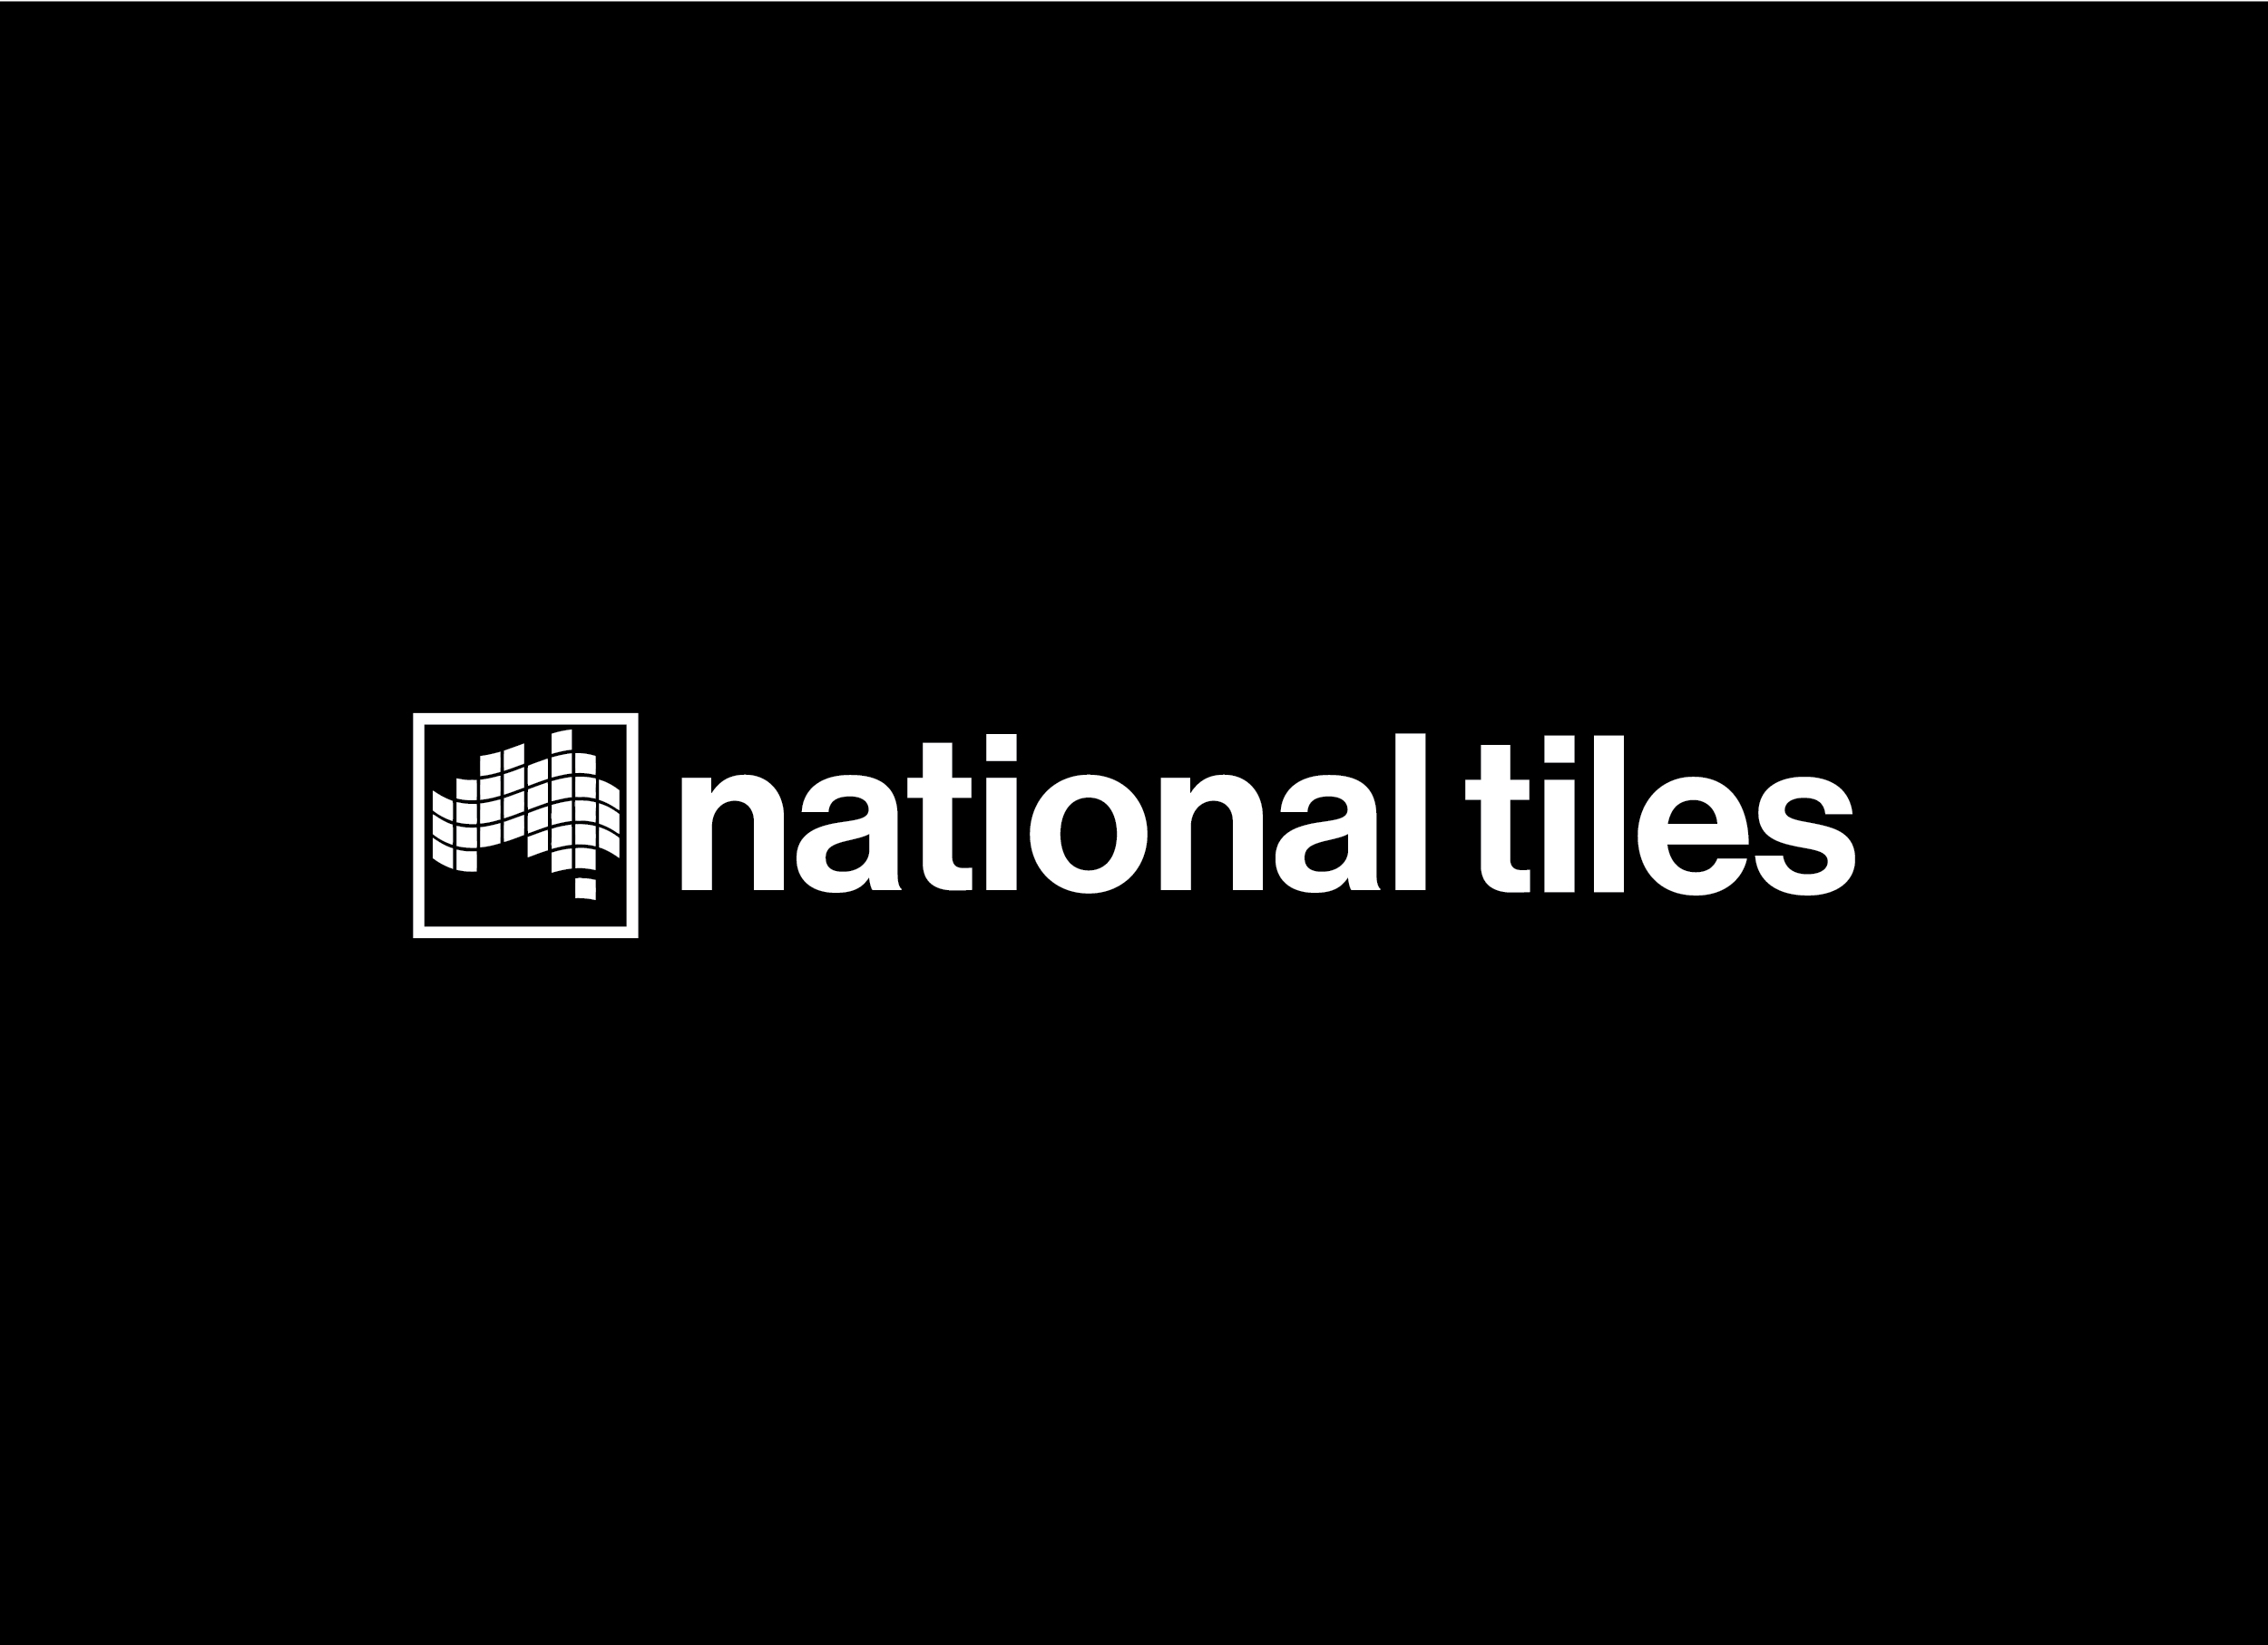 National Tiles - Brand Mark Reversed